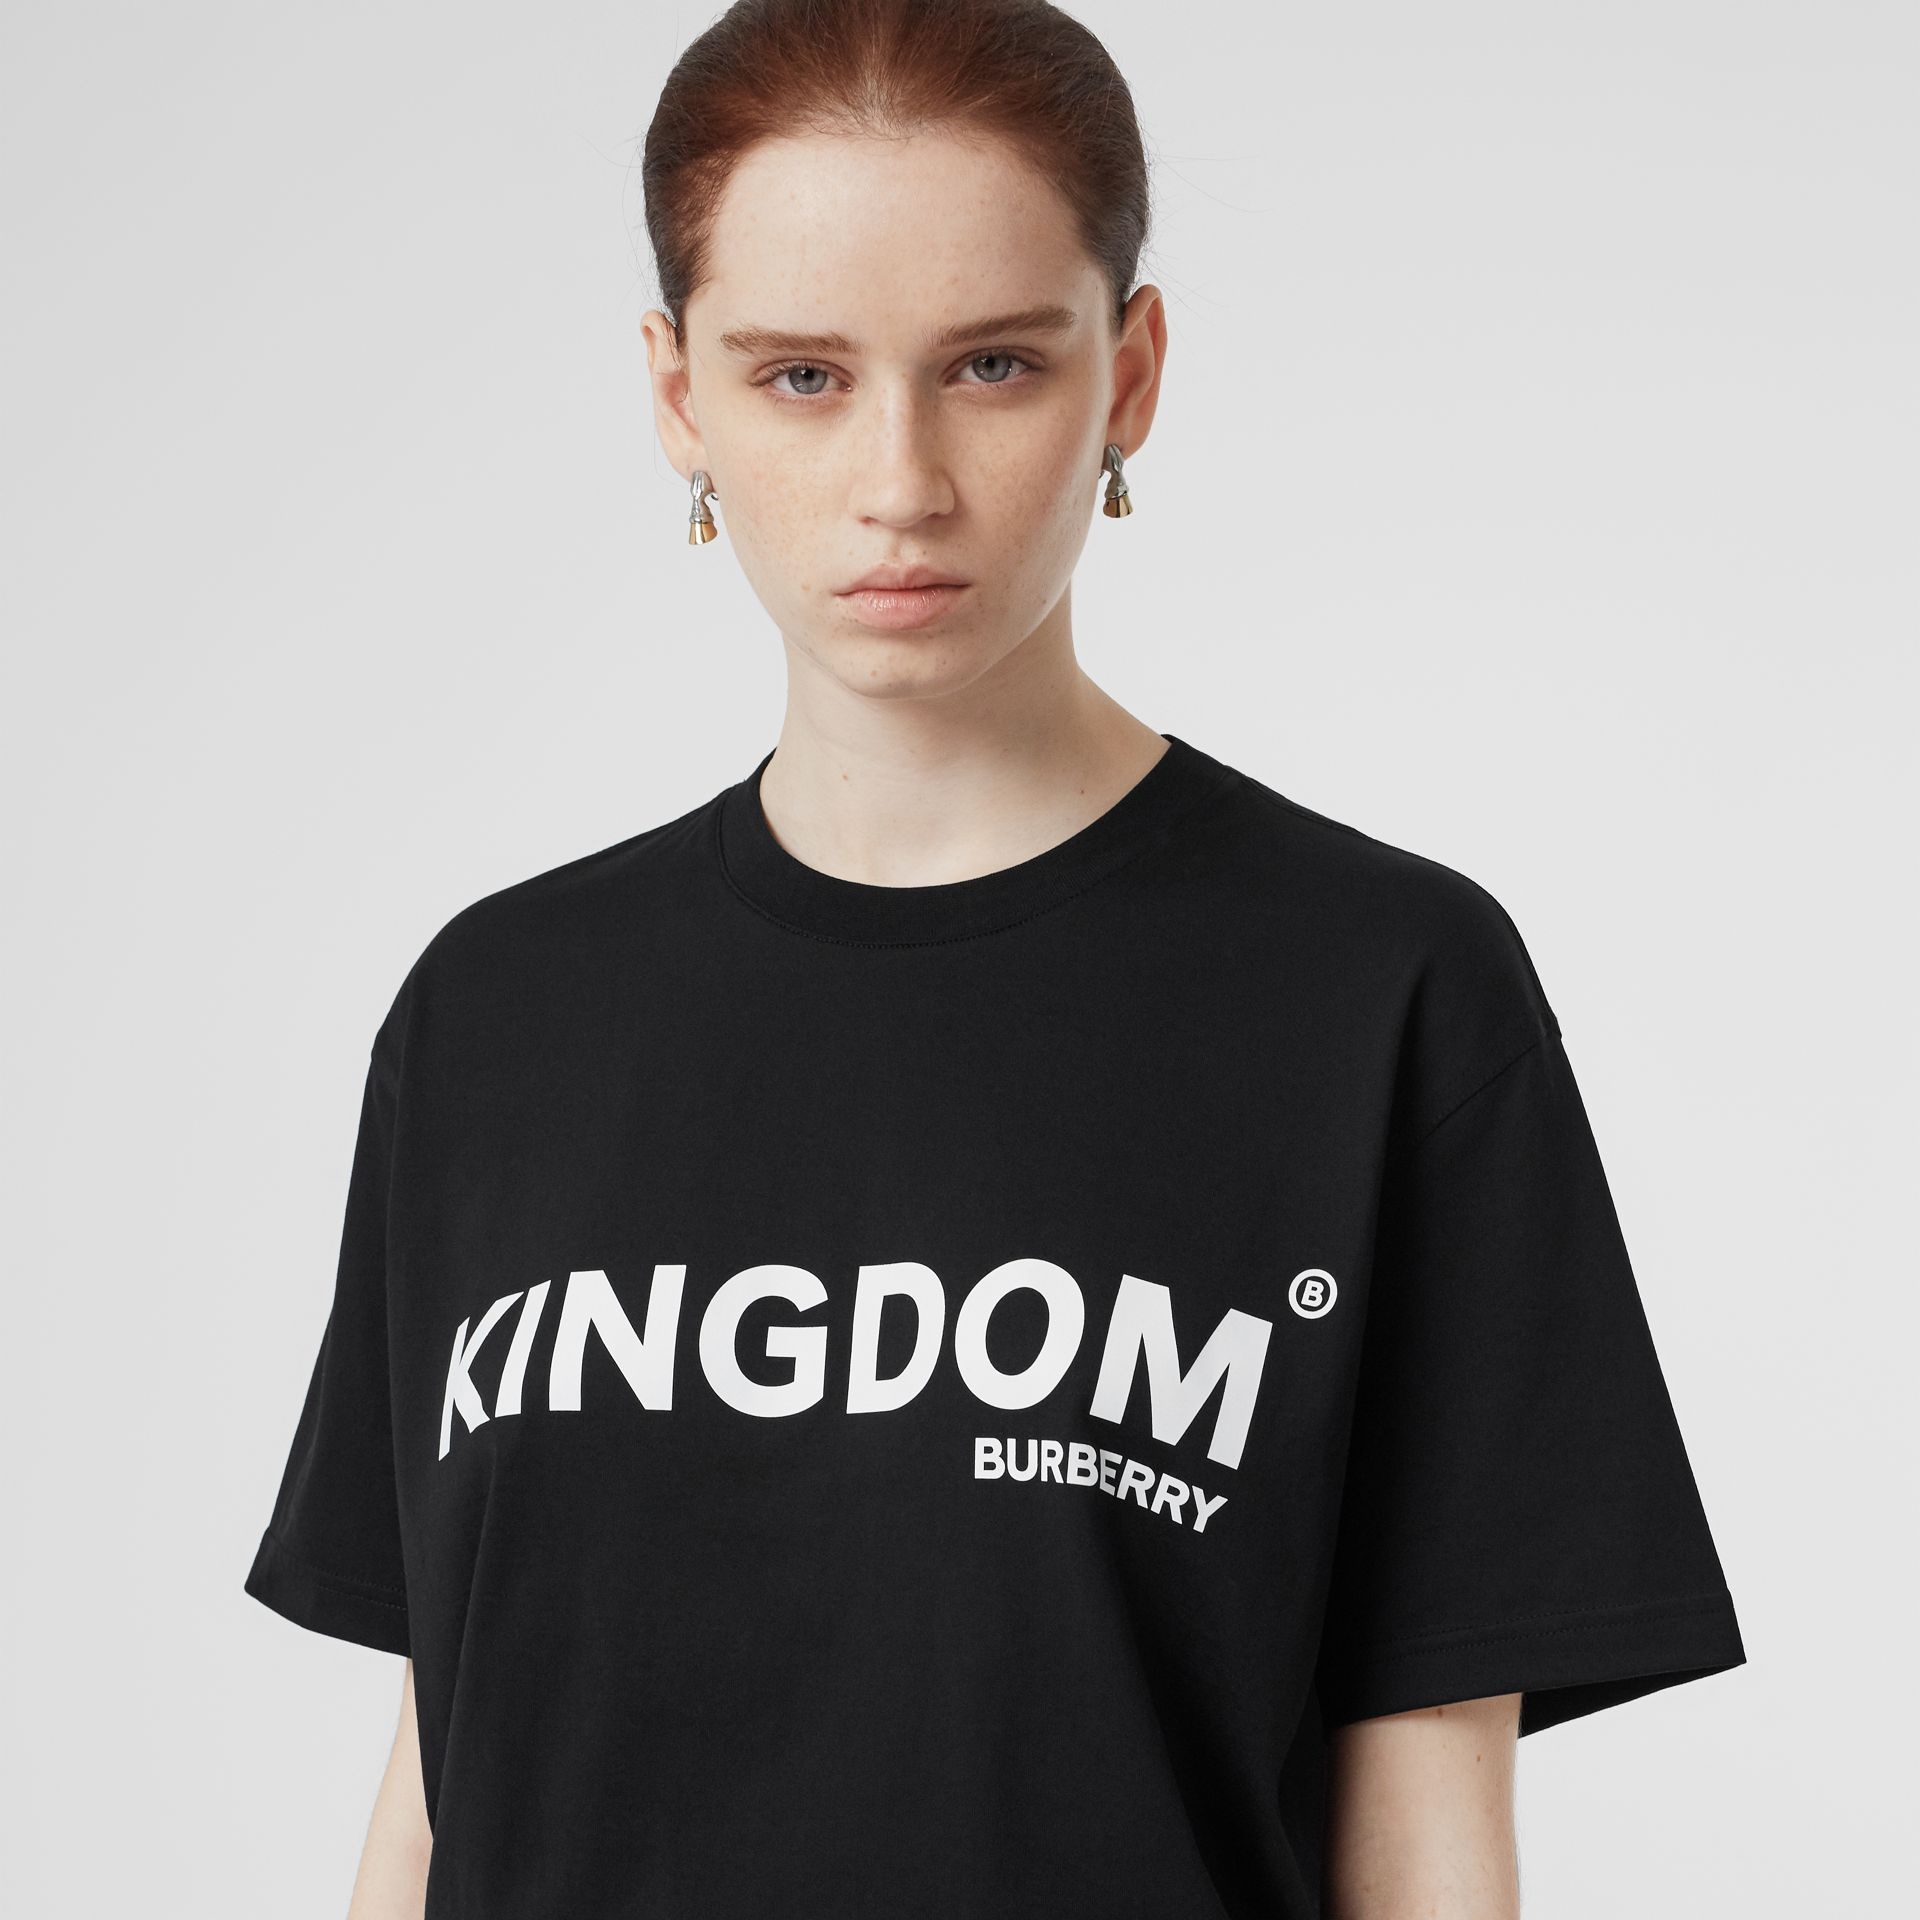 Kingdom Print Cotton Oversized T-shirt in Black - Women | Burberry United States - gallery image 1